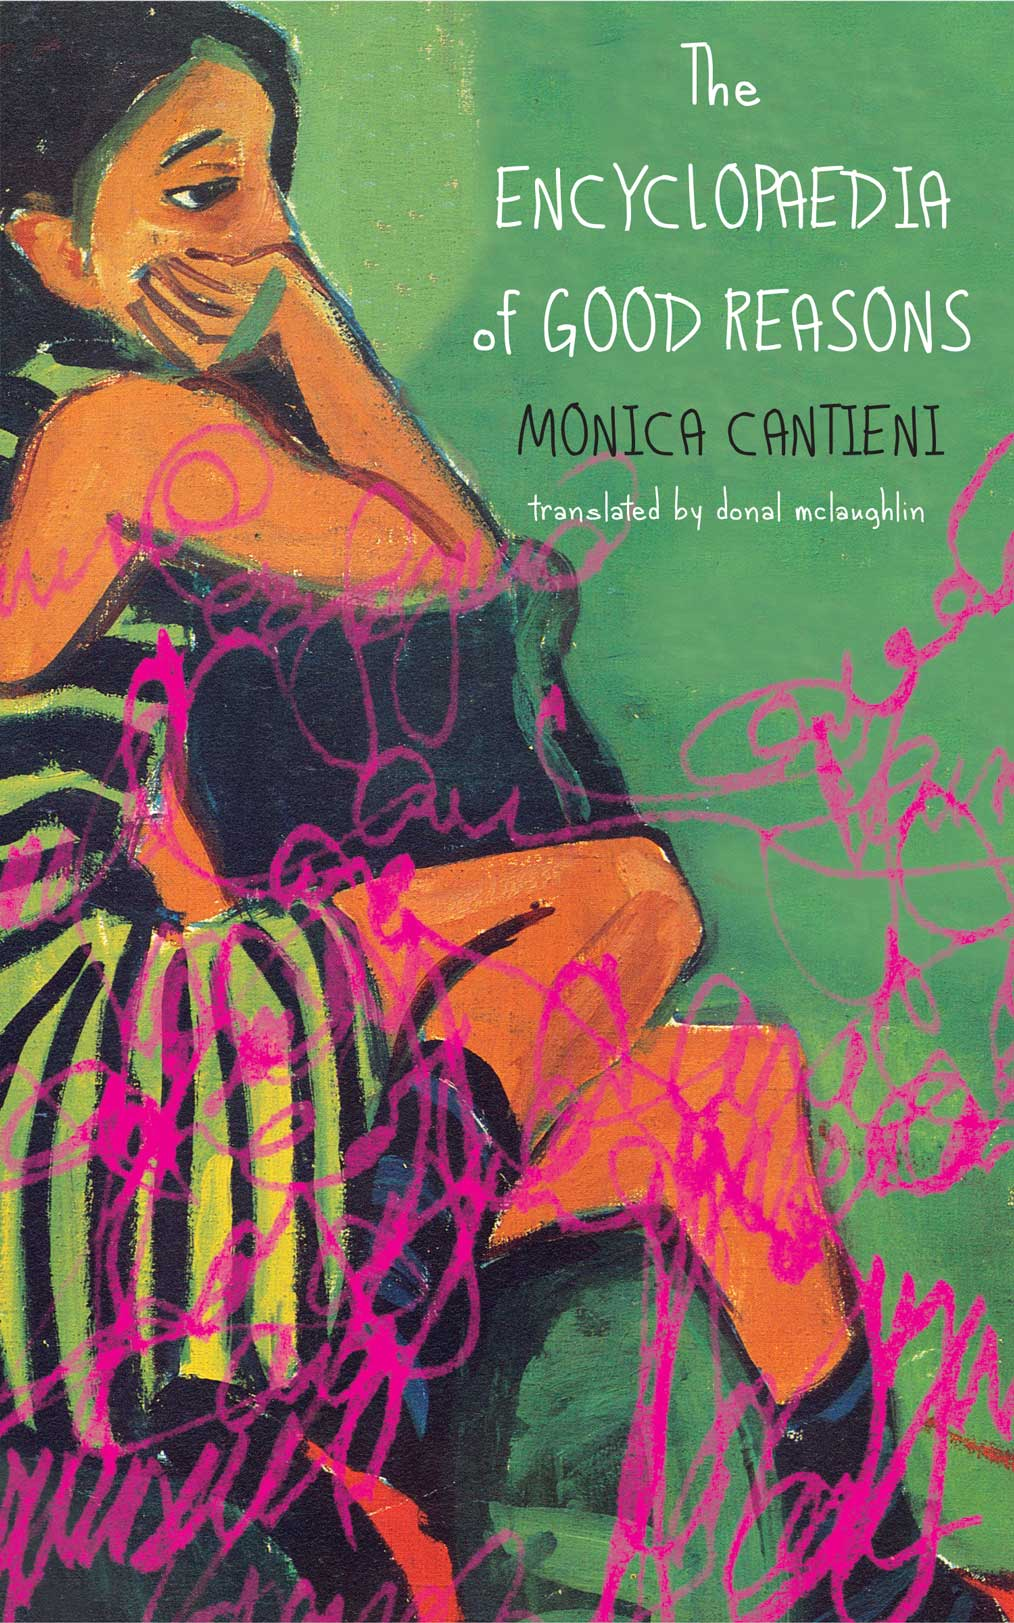 The Encyclopaedia of Good Reasons by Monica Cantieni | Seagull Books